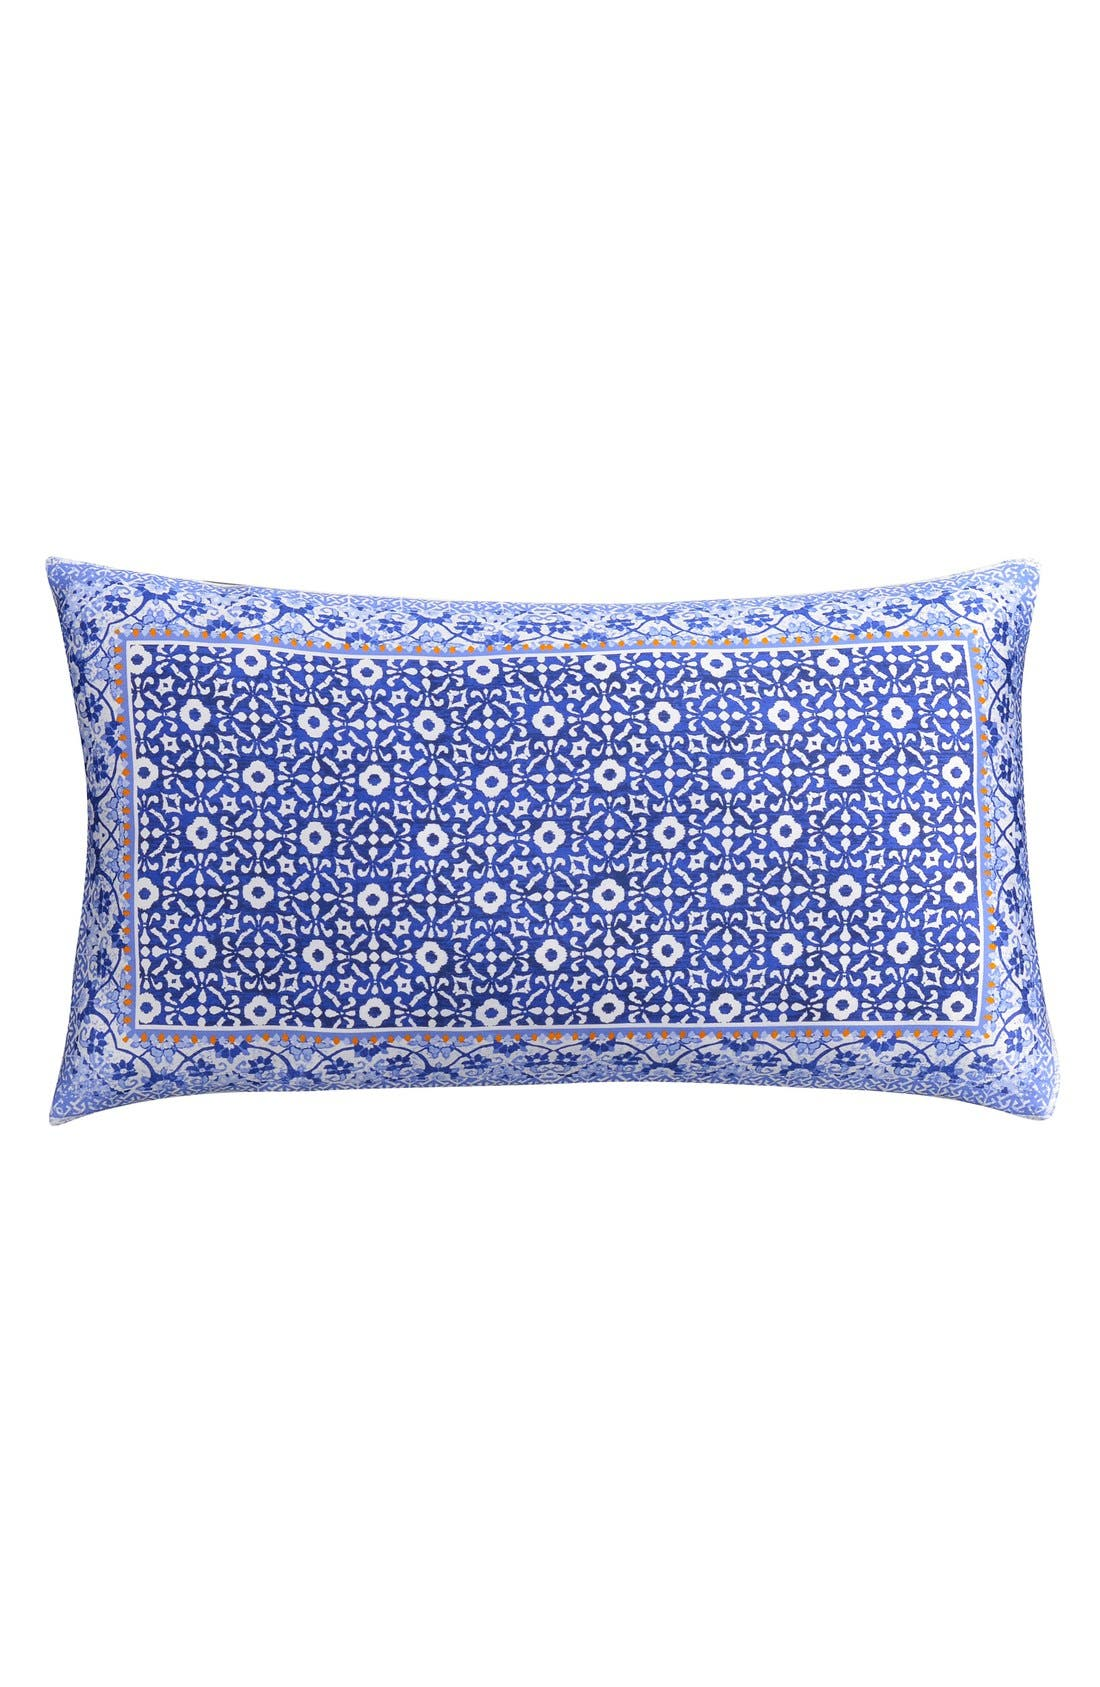 Alternate Image 1 Selected - cupcakes & cashmere Blue Frame Pillow